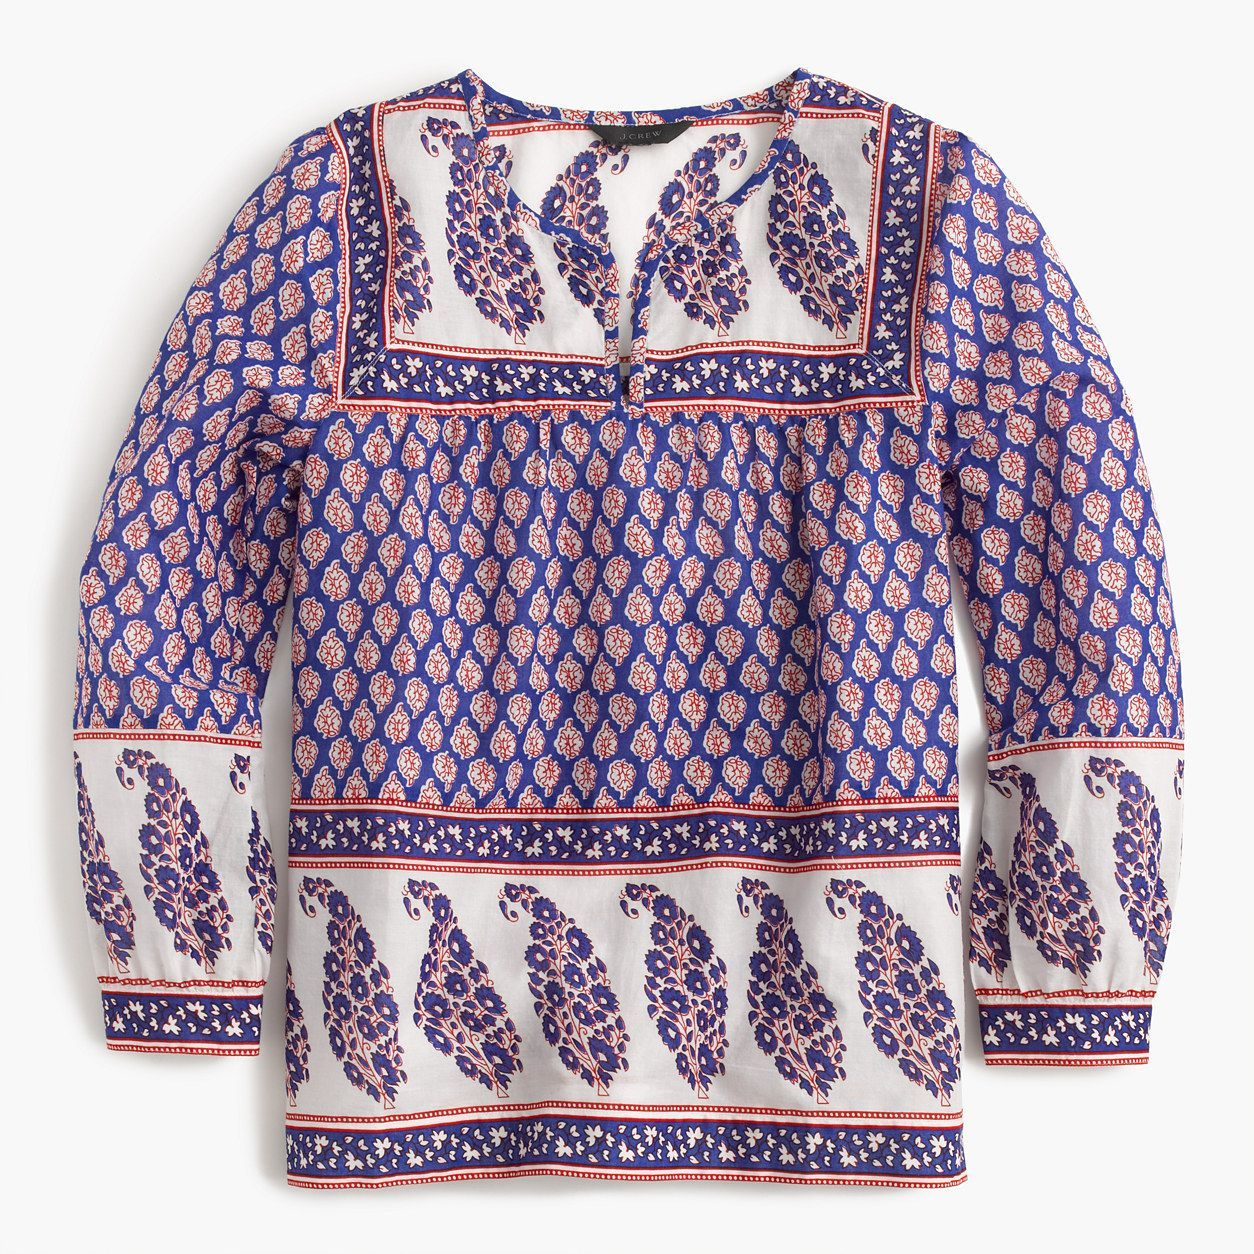 J.Crew Womens Tall Mixed Paisley Top